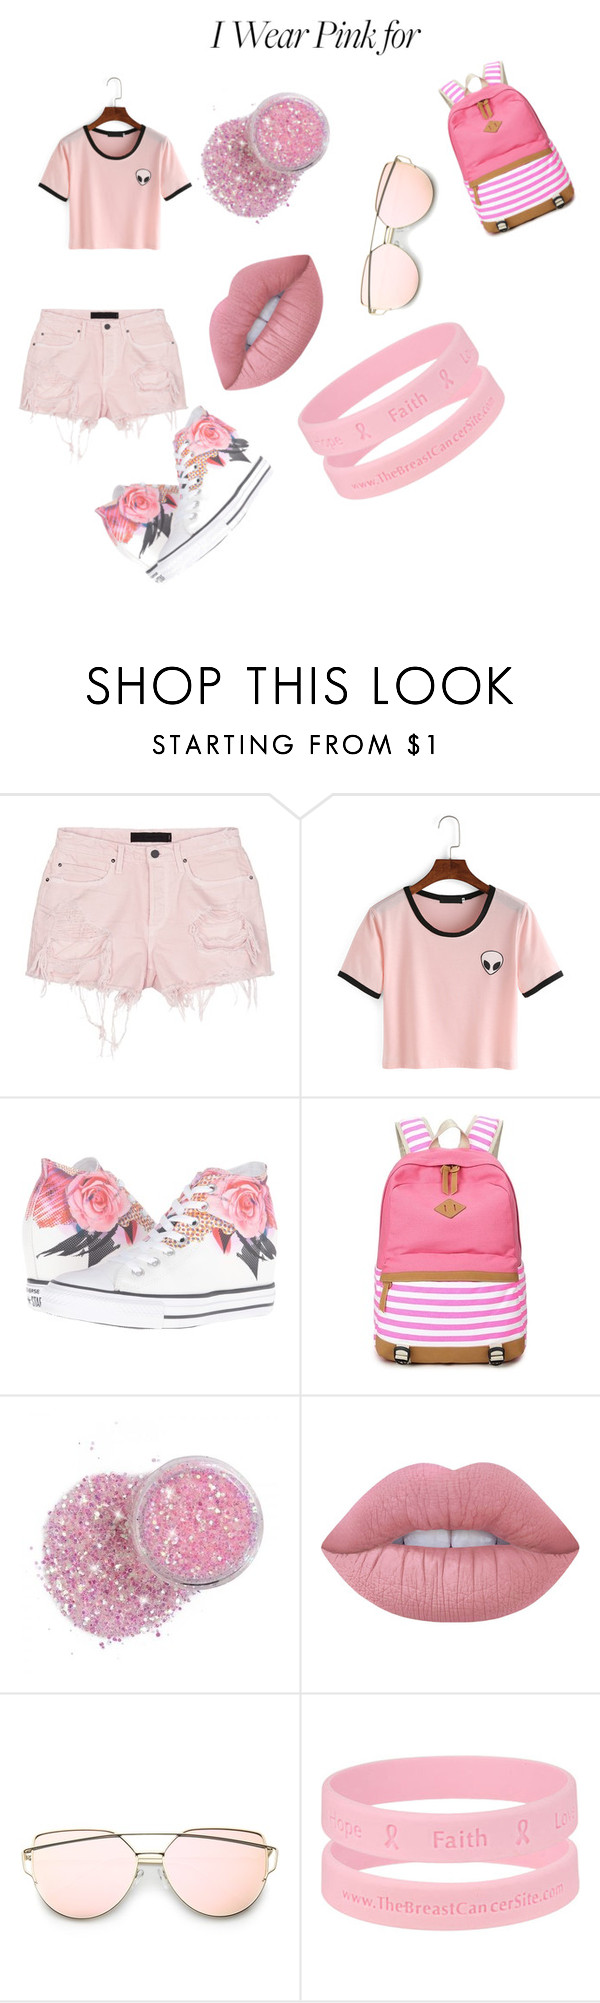 """""""I WEAR PINK FOR MY BFF"""" by itsmejustme-1 ❤ liked on Polyvore featuring Alexander Wang, Converse, Lime Crime and IWearPinkFor"""